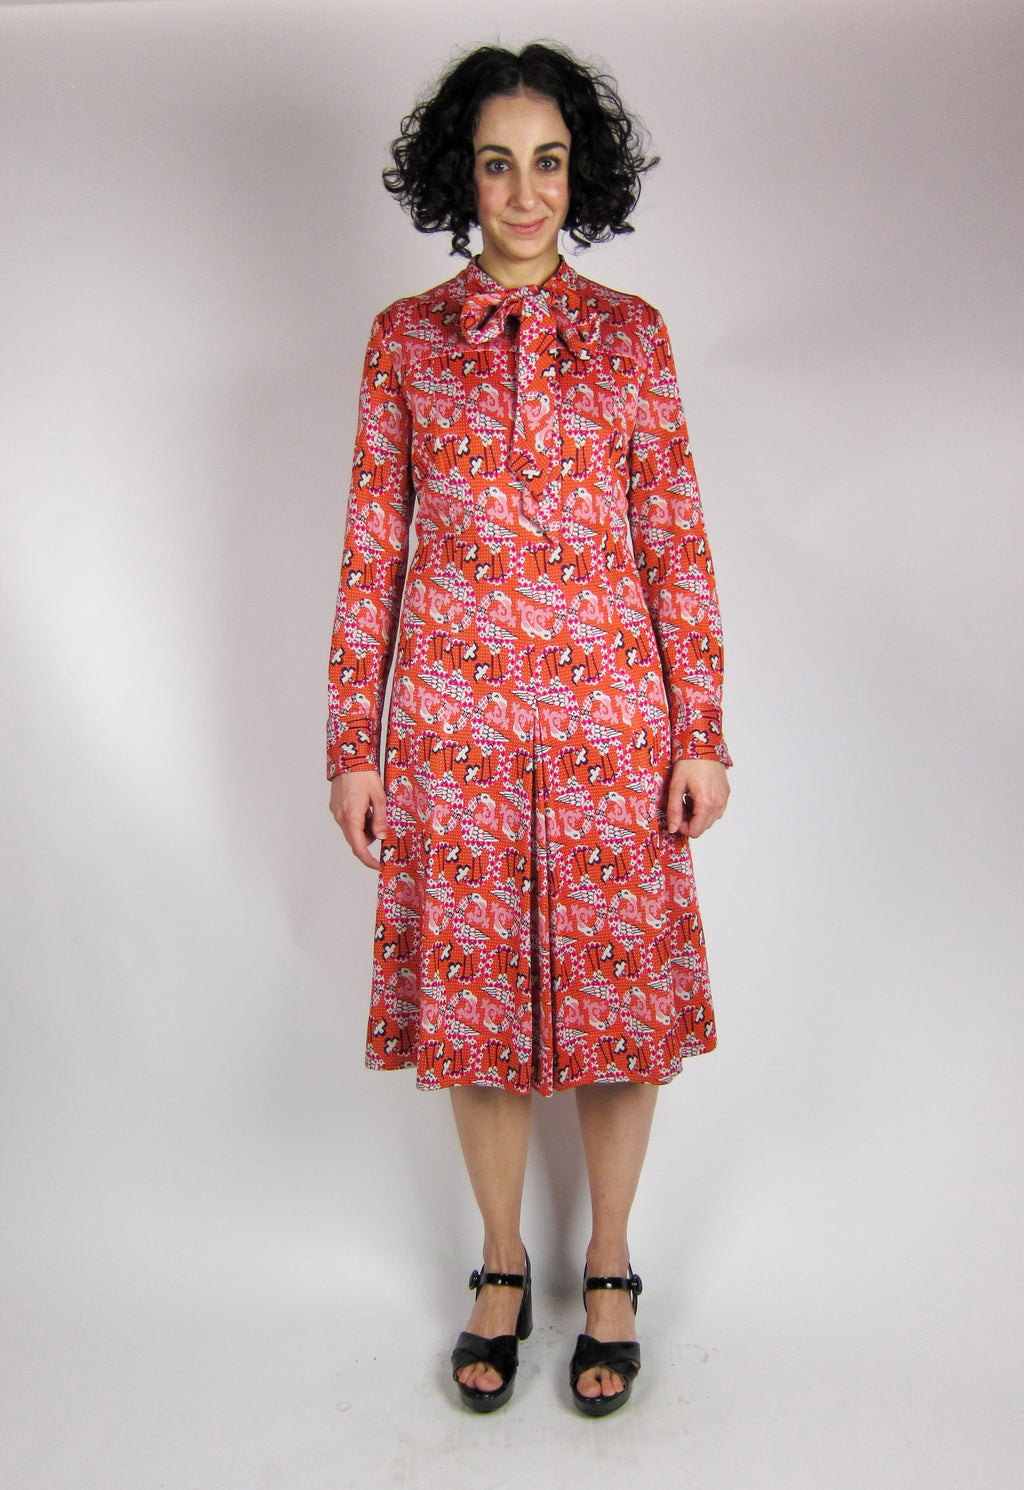 Vintage Flamingo Print Dress